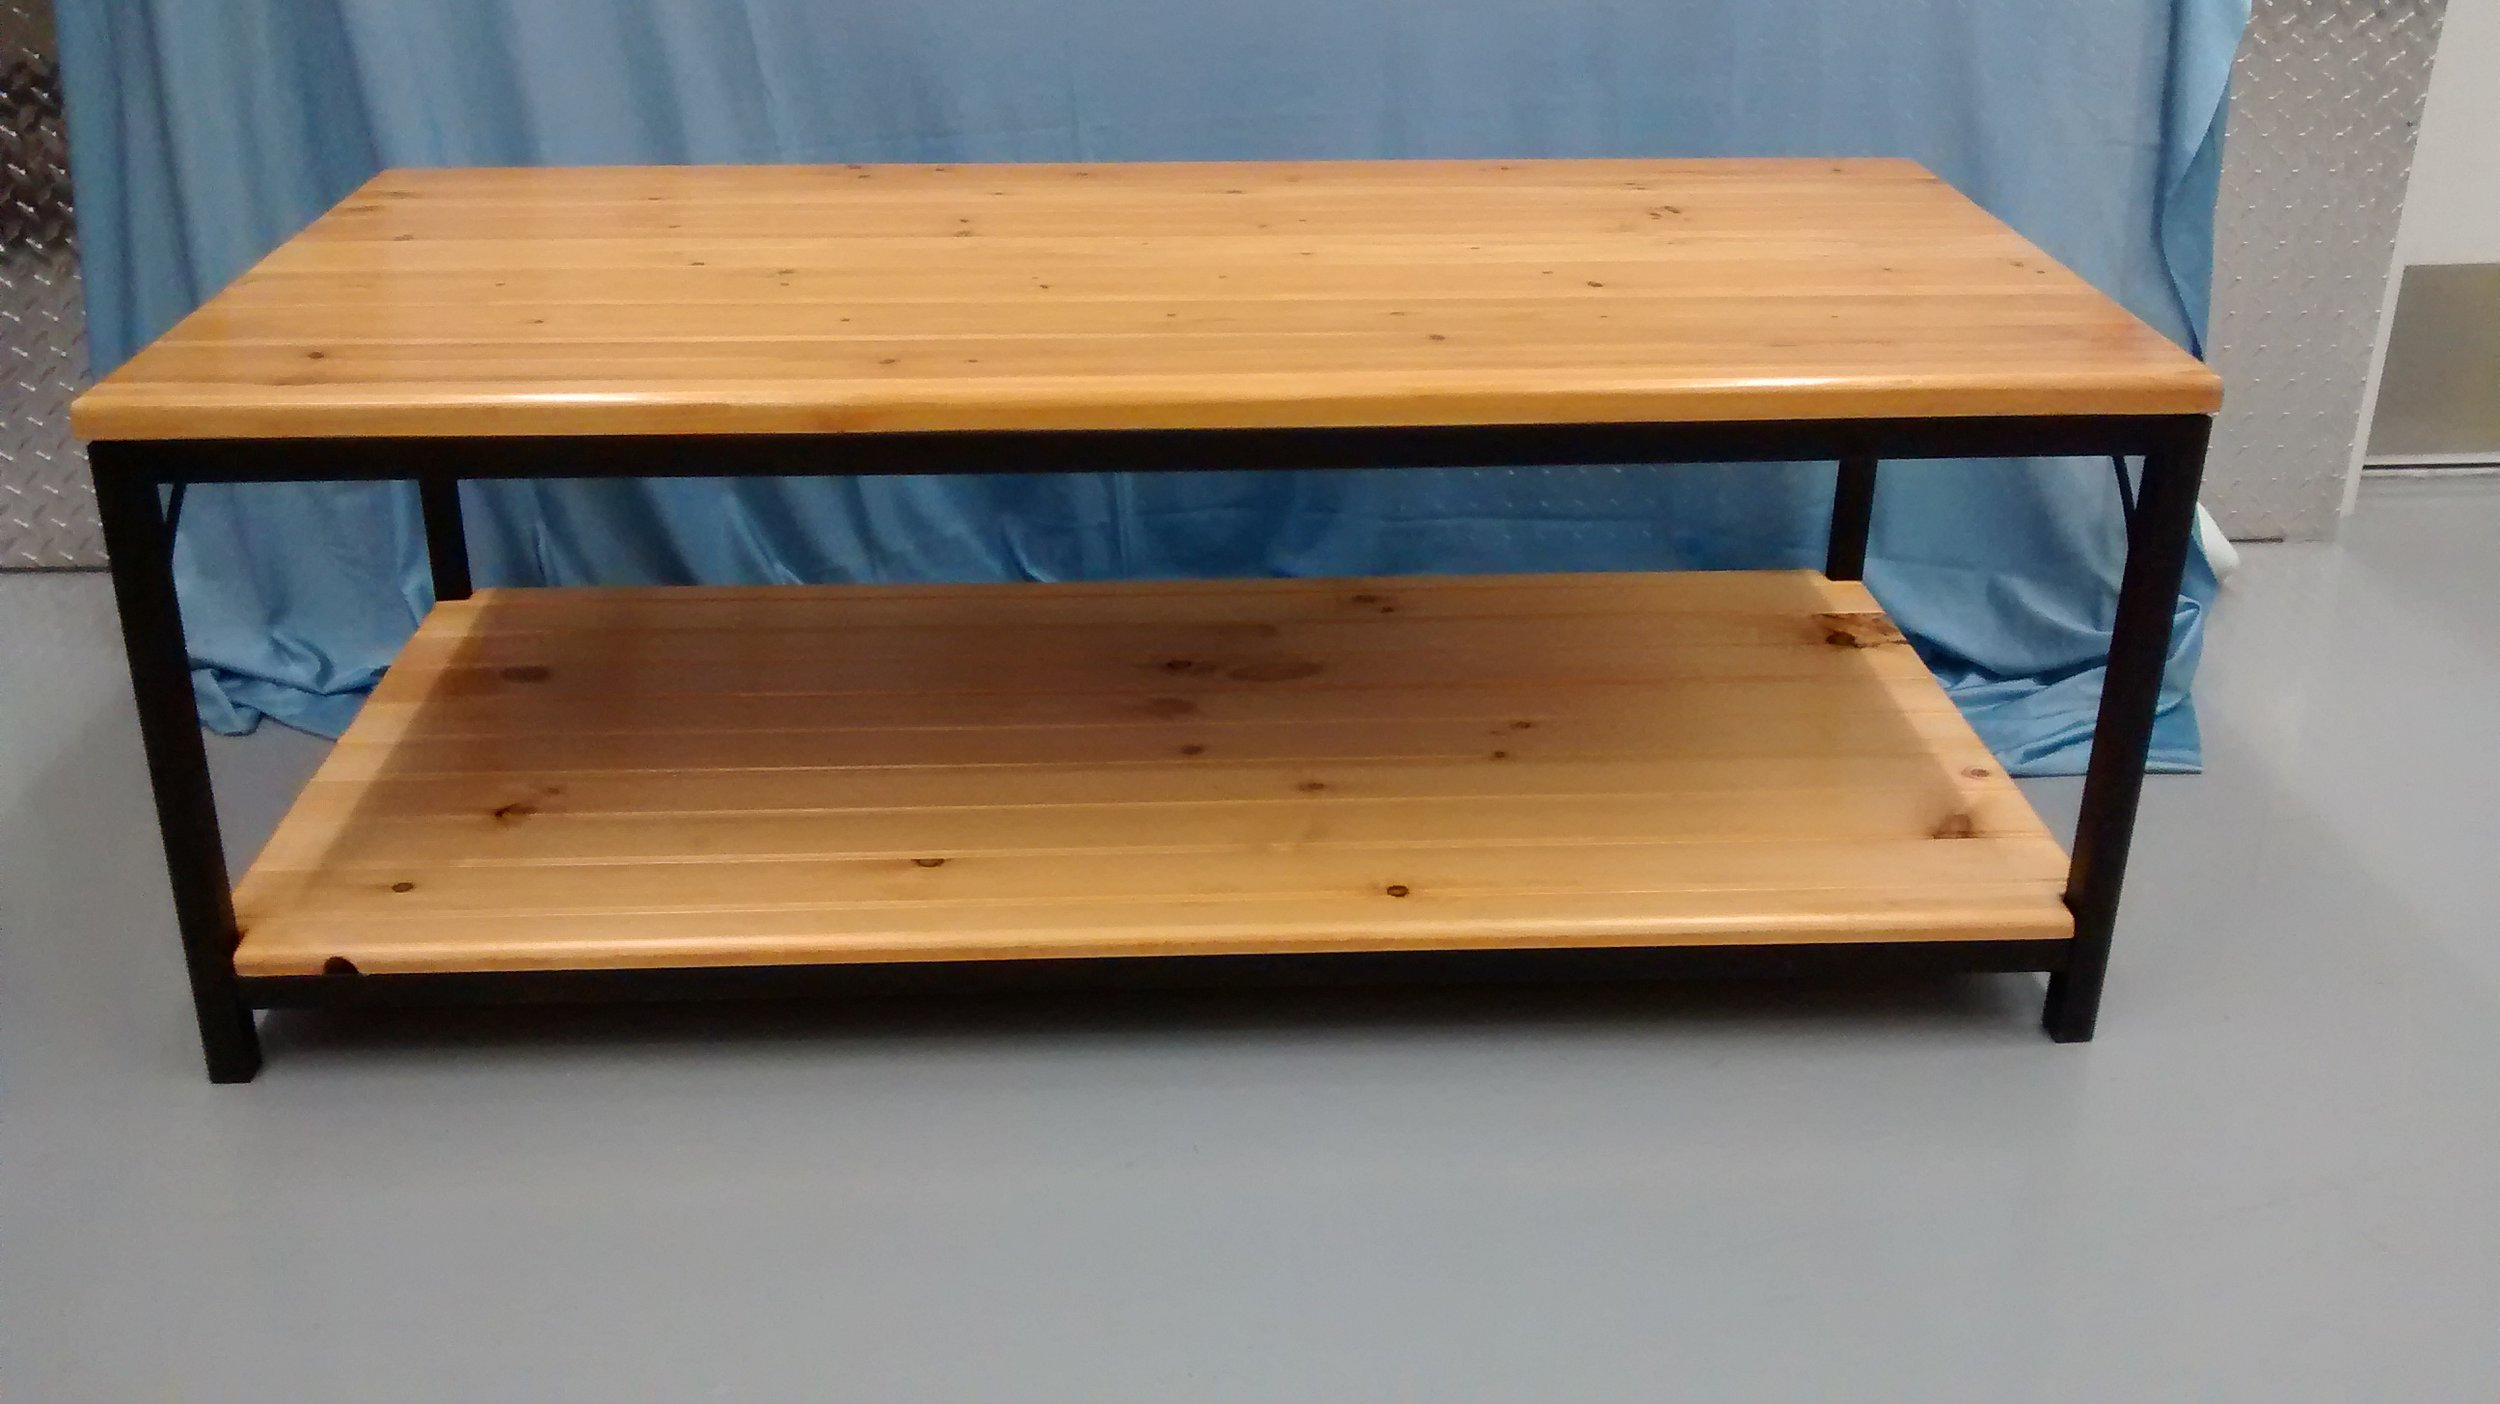 Coffee Table with Refinished Wood Top and New Lower Shelf with Square Steel Tube Frame and Legs